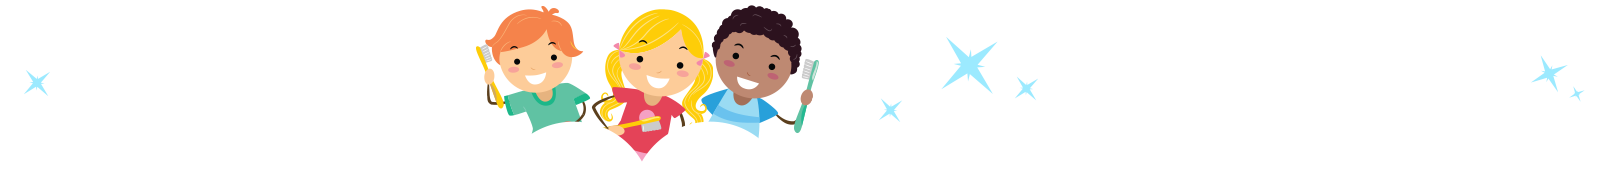 Teeth Cleaning For Children - Dr. Barrera Campbell CA Pediatric Dentist